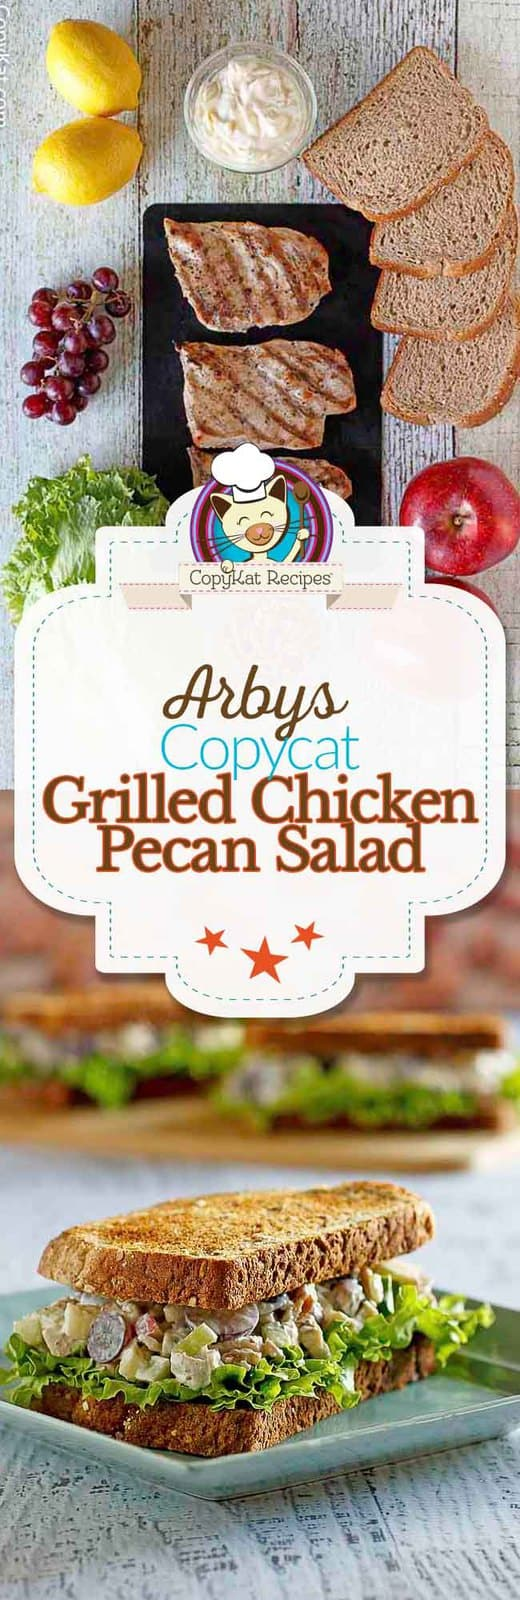 You can recreate the Arby's Grilled Chicken Pecan salad from scratch with this easy copycat recipe. #copycat #copycatrecipe #chicken #arbys